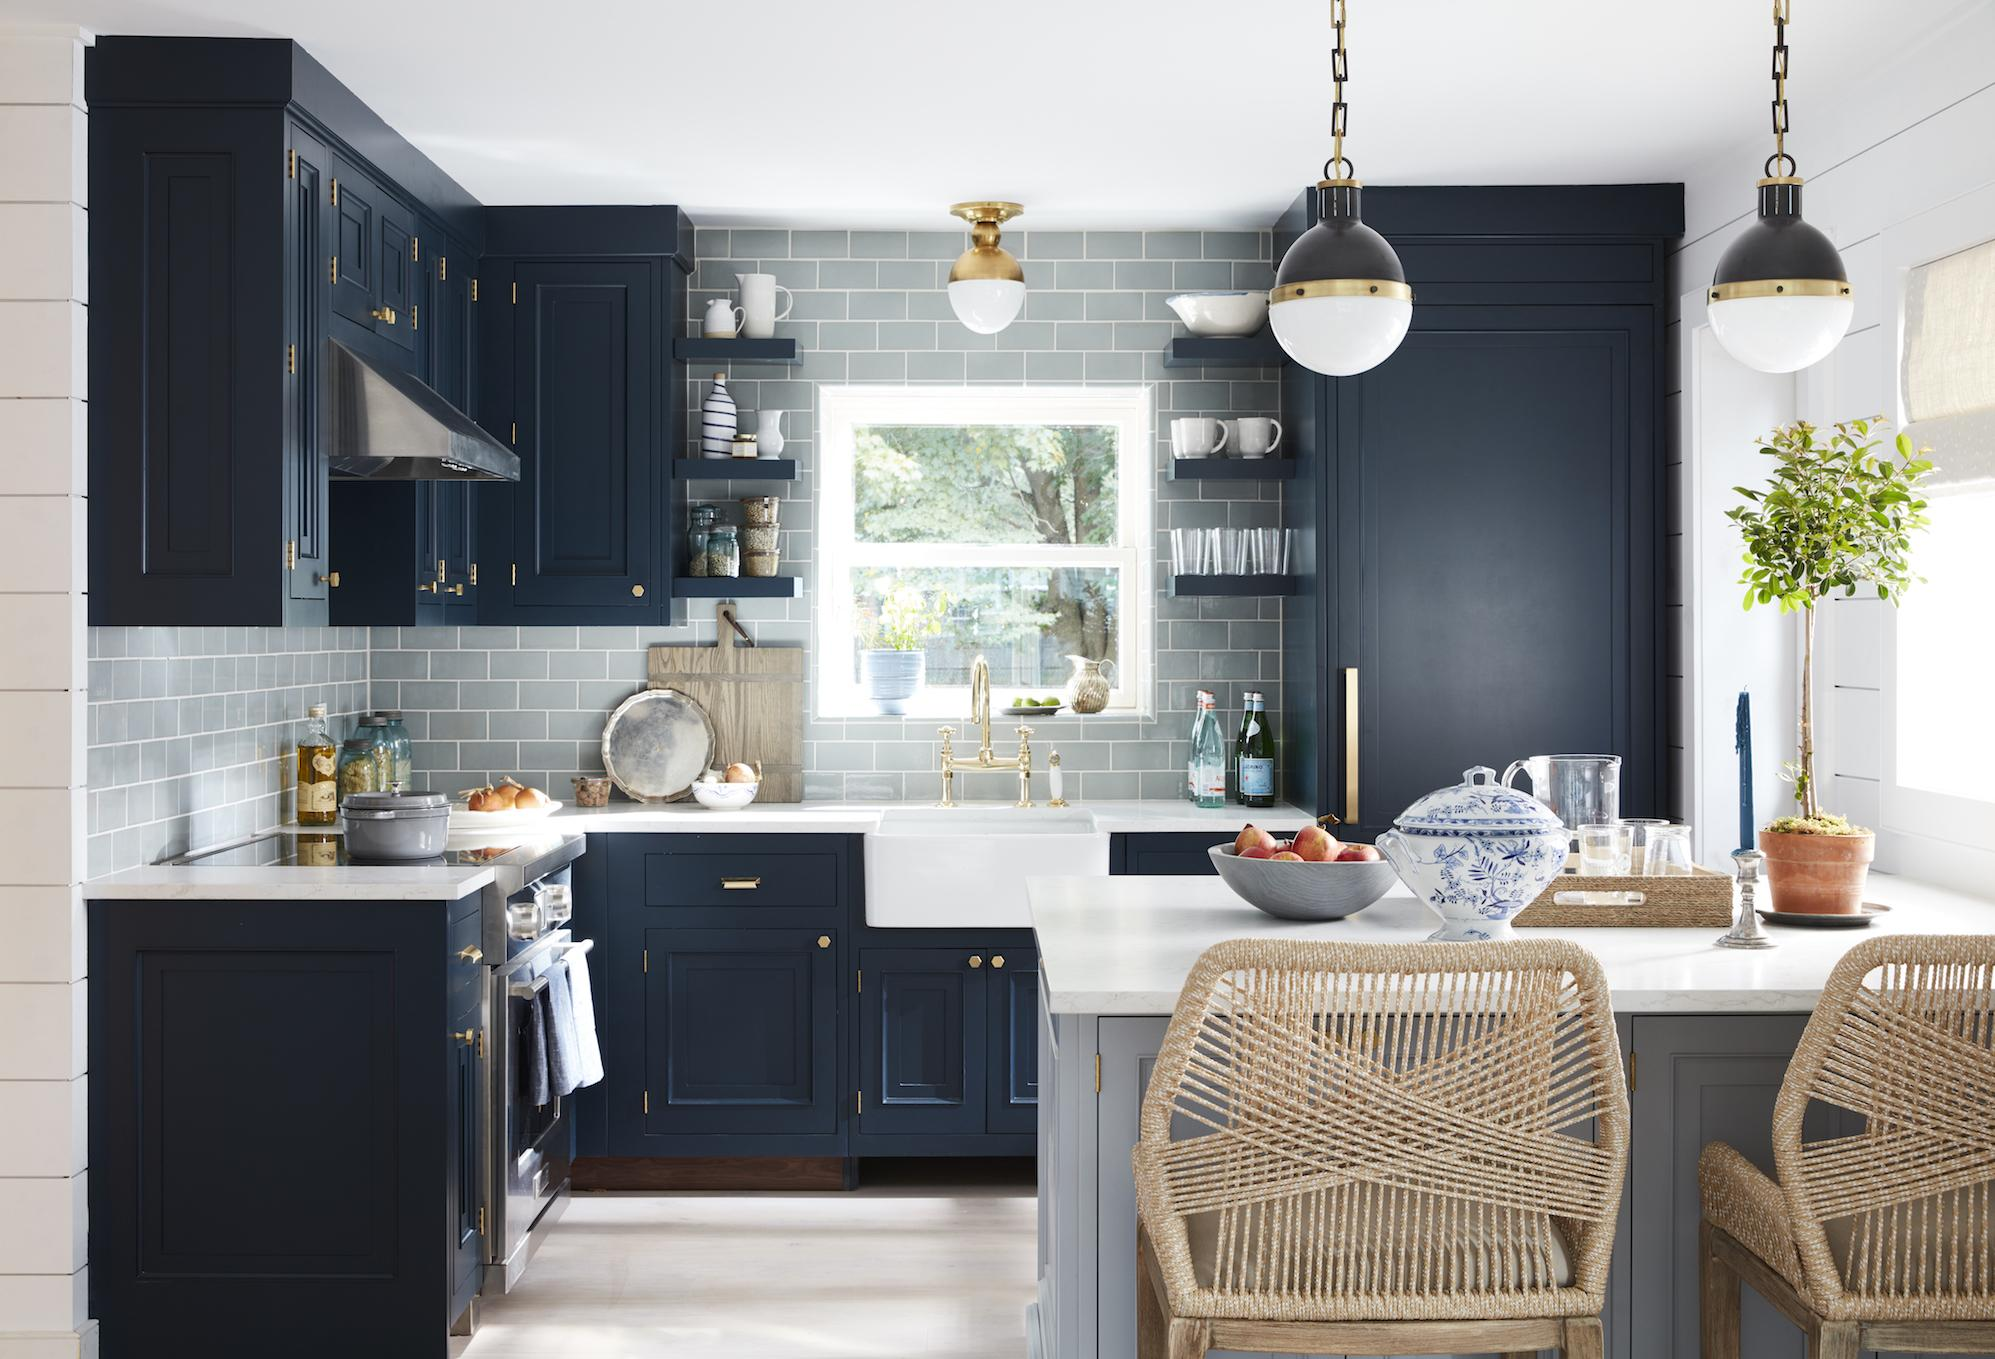 Hamptons Kitchens Cool Blues And Greys Adorn This Ocean Inspired Kitchen In The